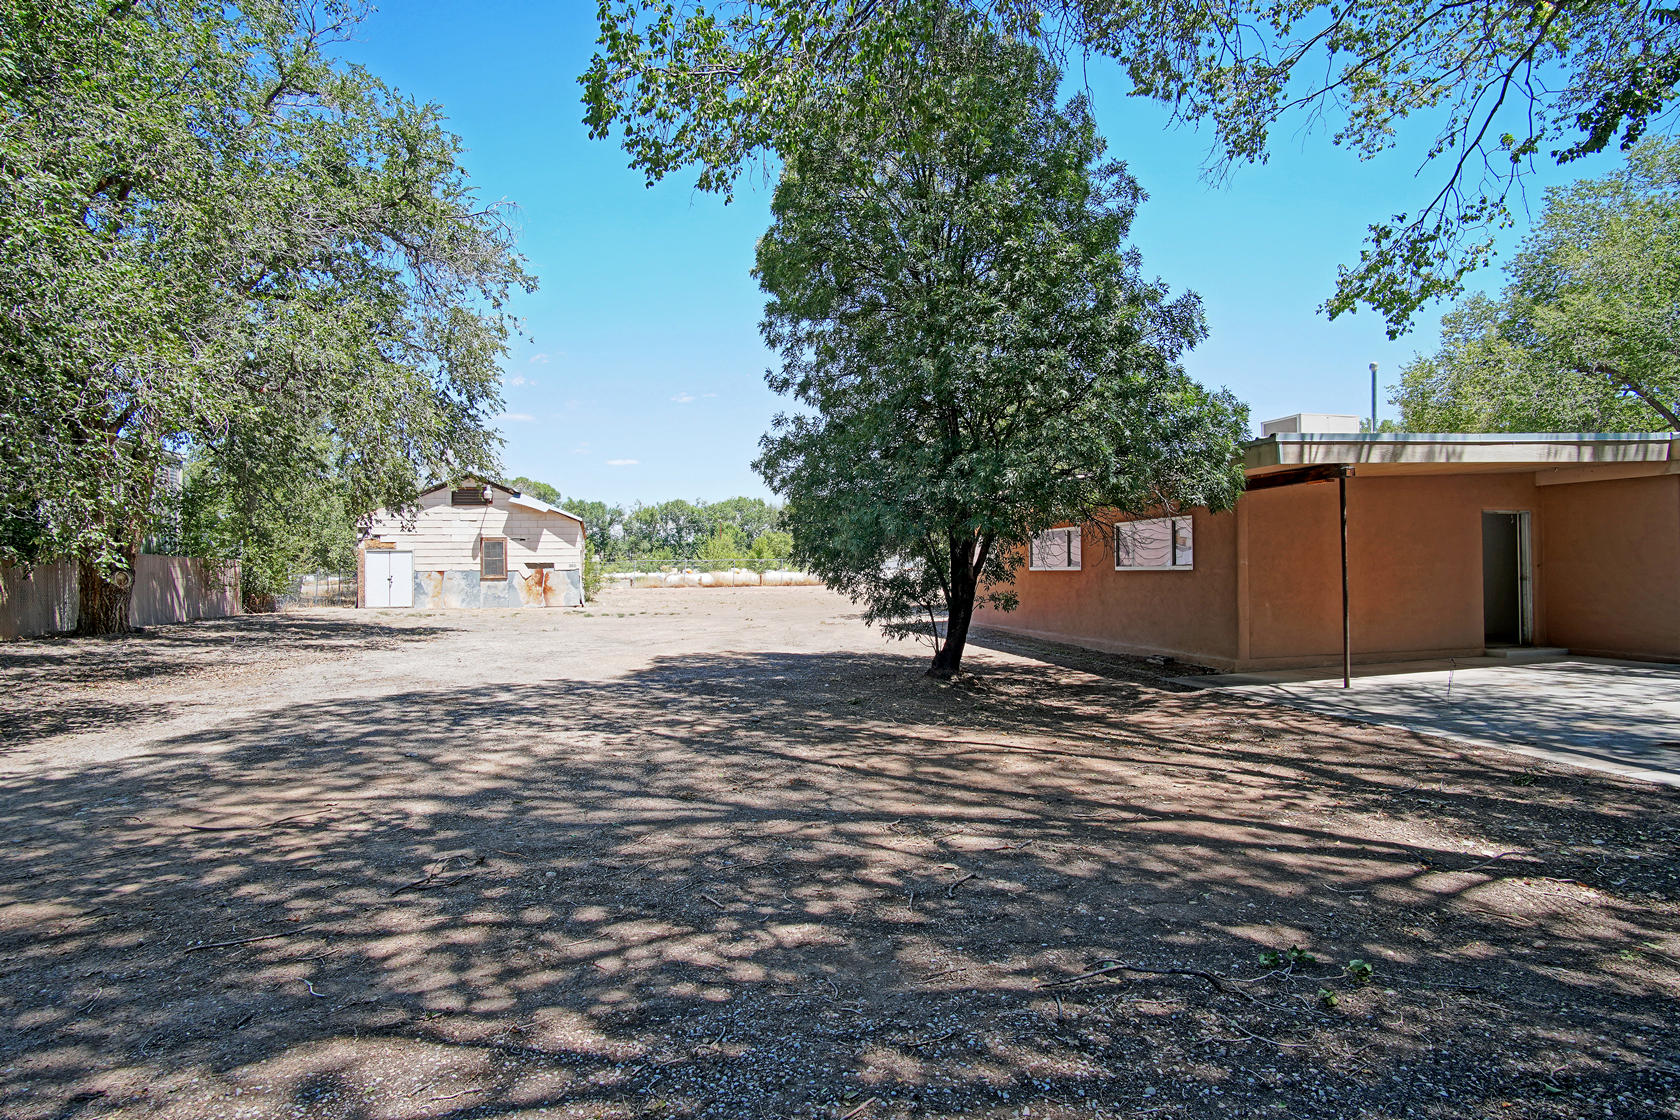 Opportunity! Opportunity! The owners are not able to finish this 3bed/2 bath home. Home is ready for all your personal touches. This .78 ac backs up the ditch with the possible water/irrigation rights. Large barrickes type building, could be a large workshop, garage or casita. Bring your hammer and talent to make this home your.